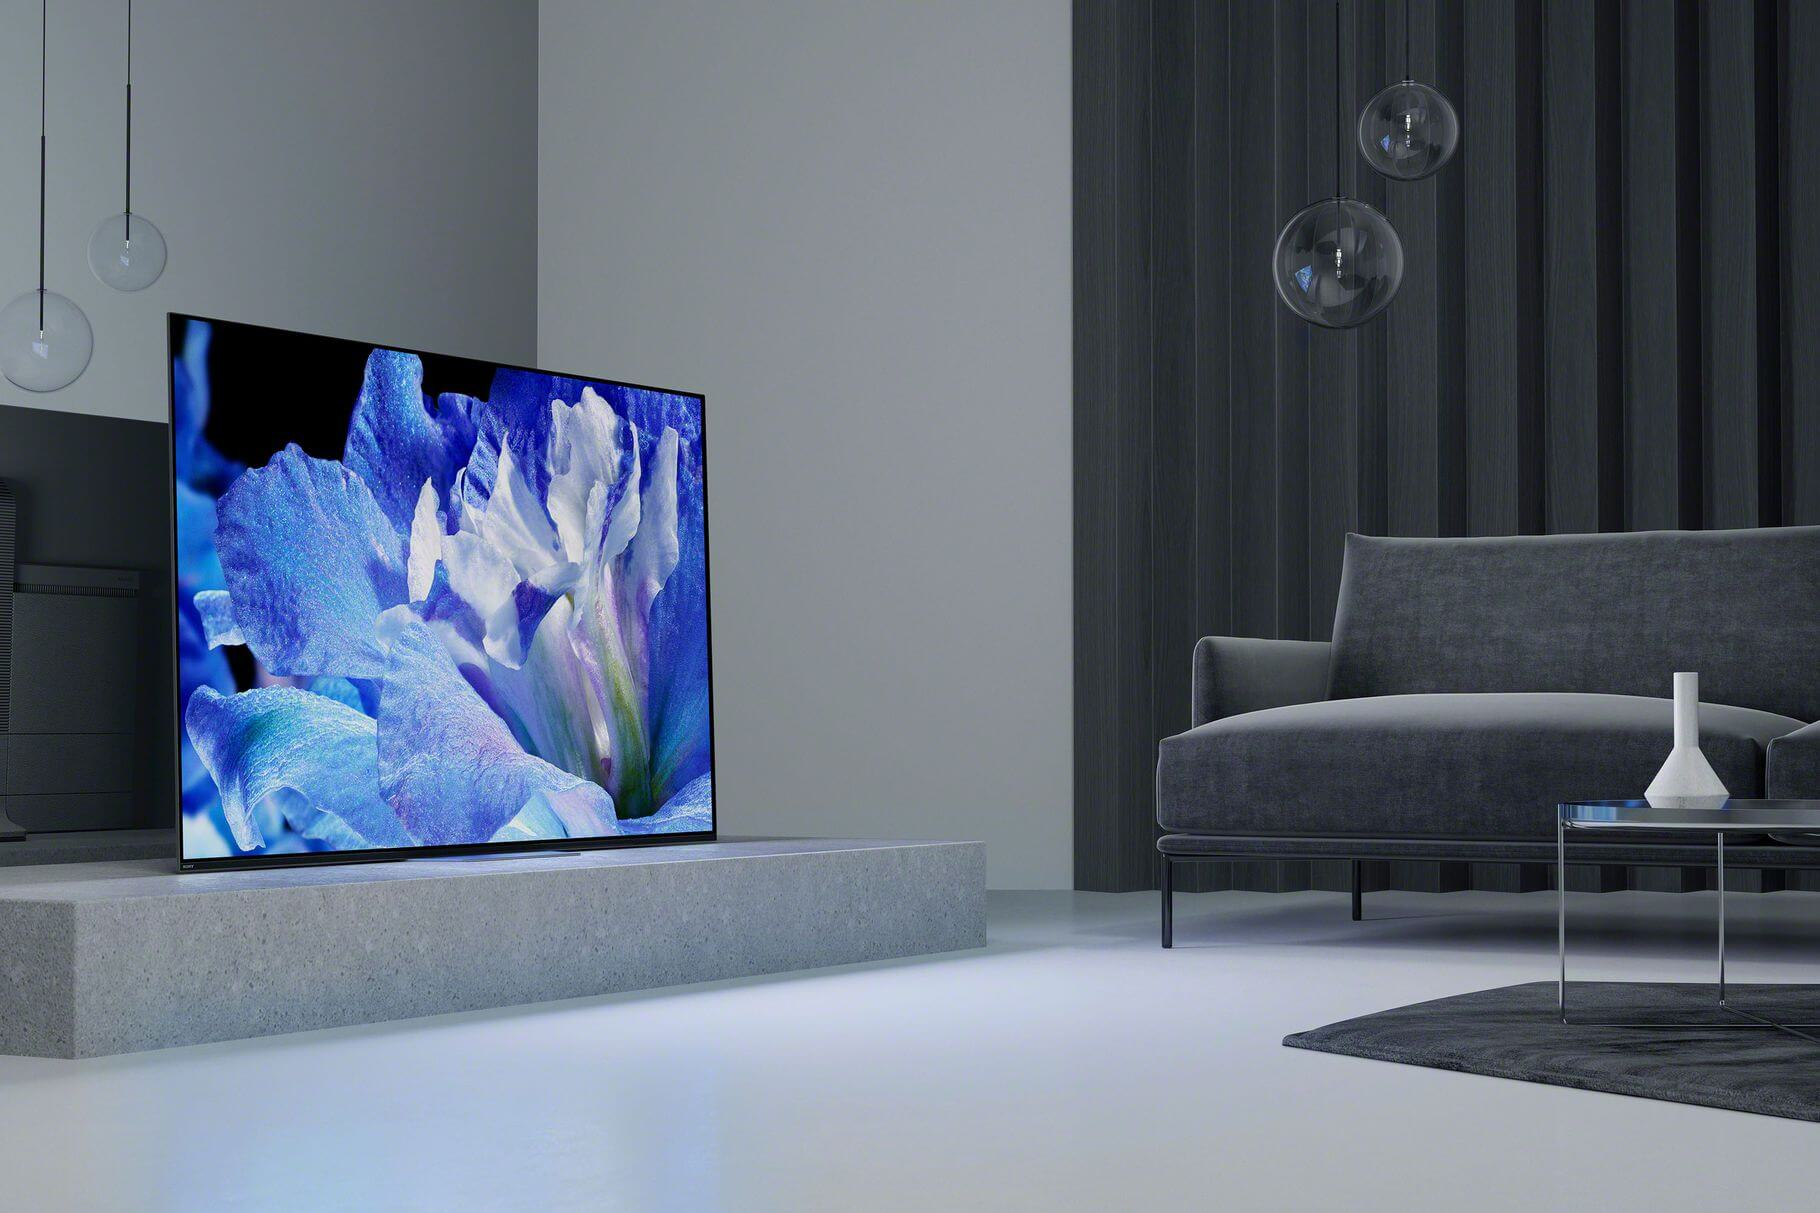 Sony�s AF8 4K OLED features �a more traditional TV design� with visual and audio upgrades